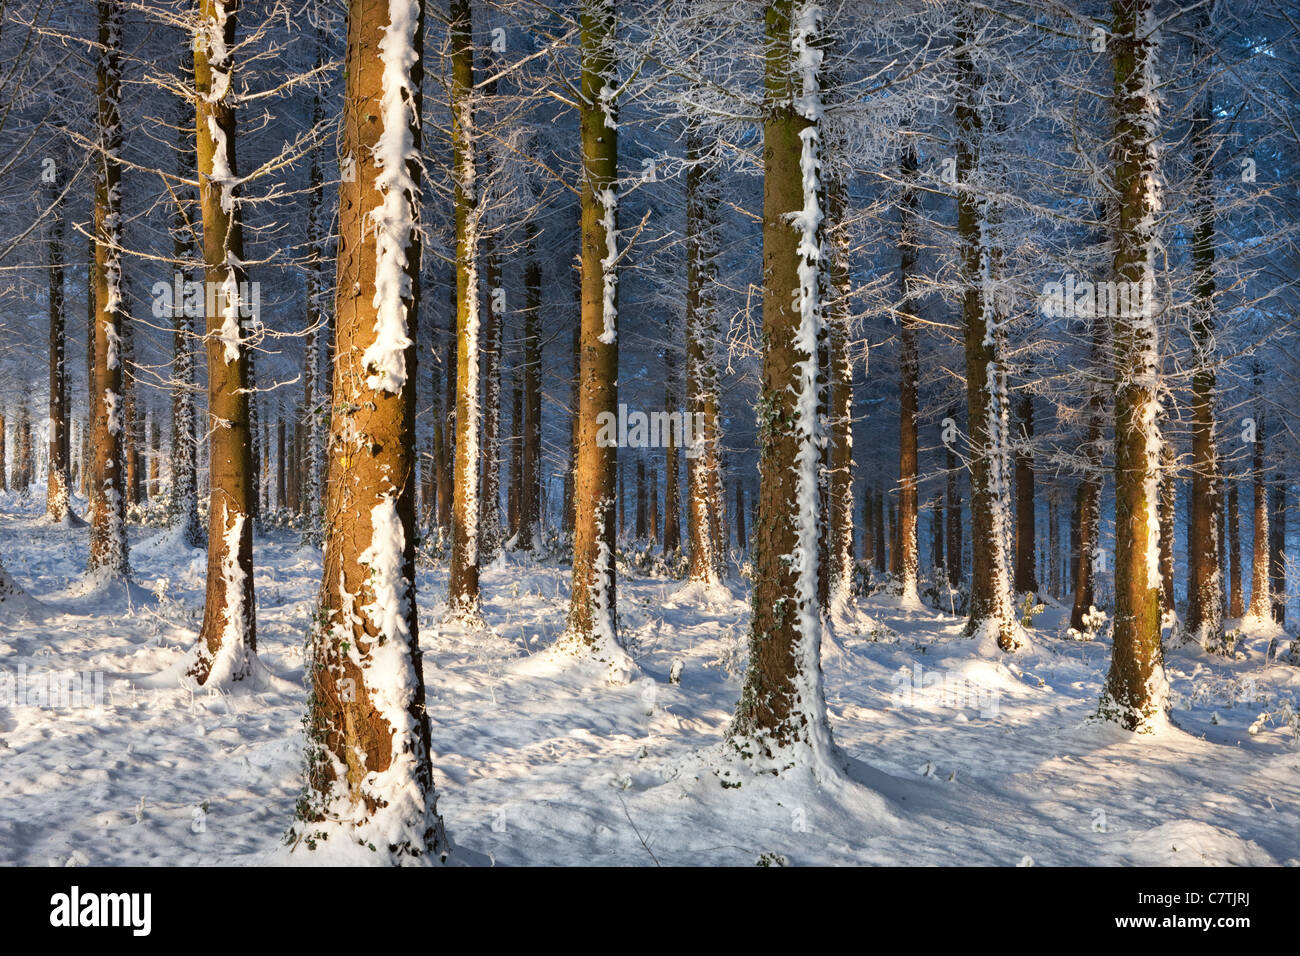 Hoar frosted trees in a snowy winter woodland, Morchard Wood, Devon, England. Winter (December) 2010. - Stock Image